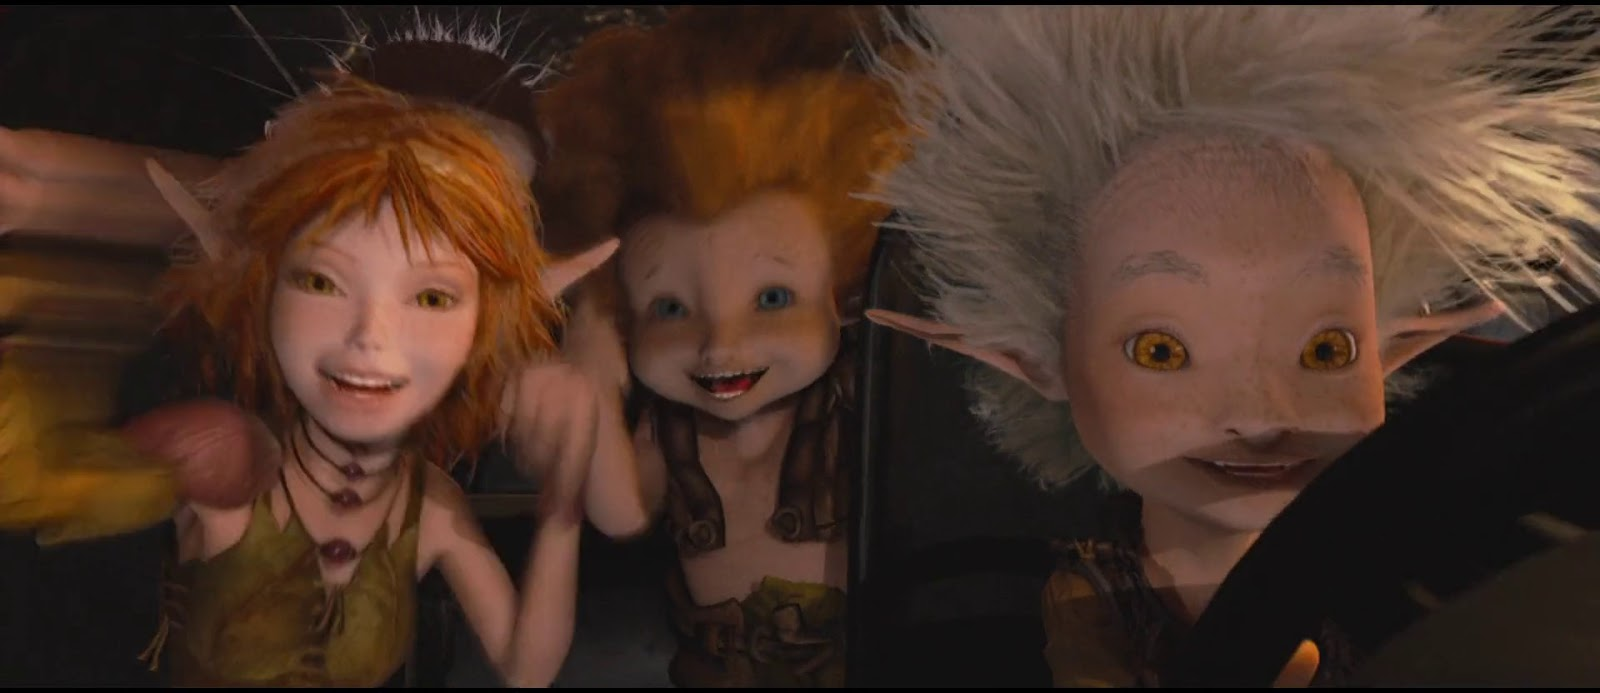 Pictures From The Movies Arthur And The Invisibles